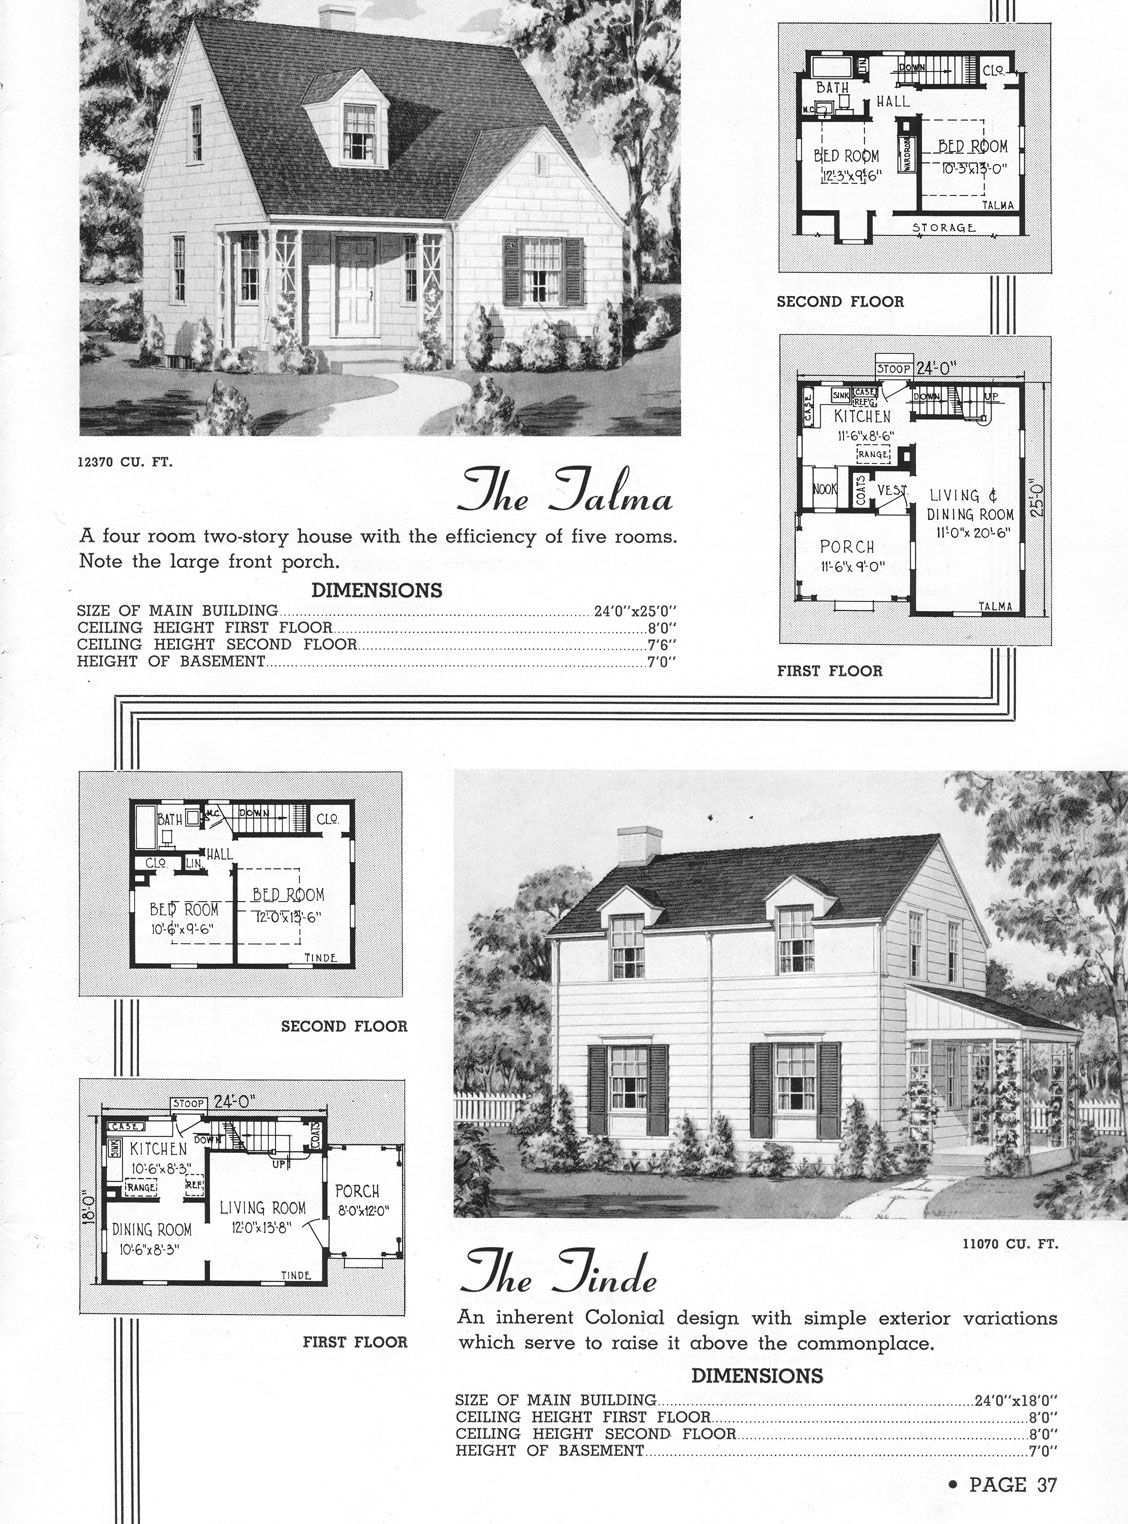 1920 S The Talma Is A Great Little House Vintage House Plans Bungalow House Plans Small House Plans